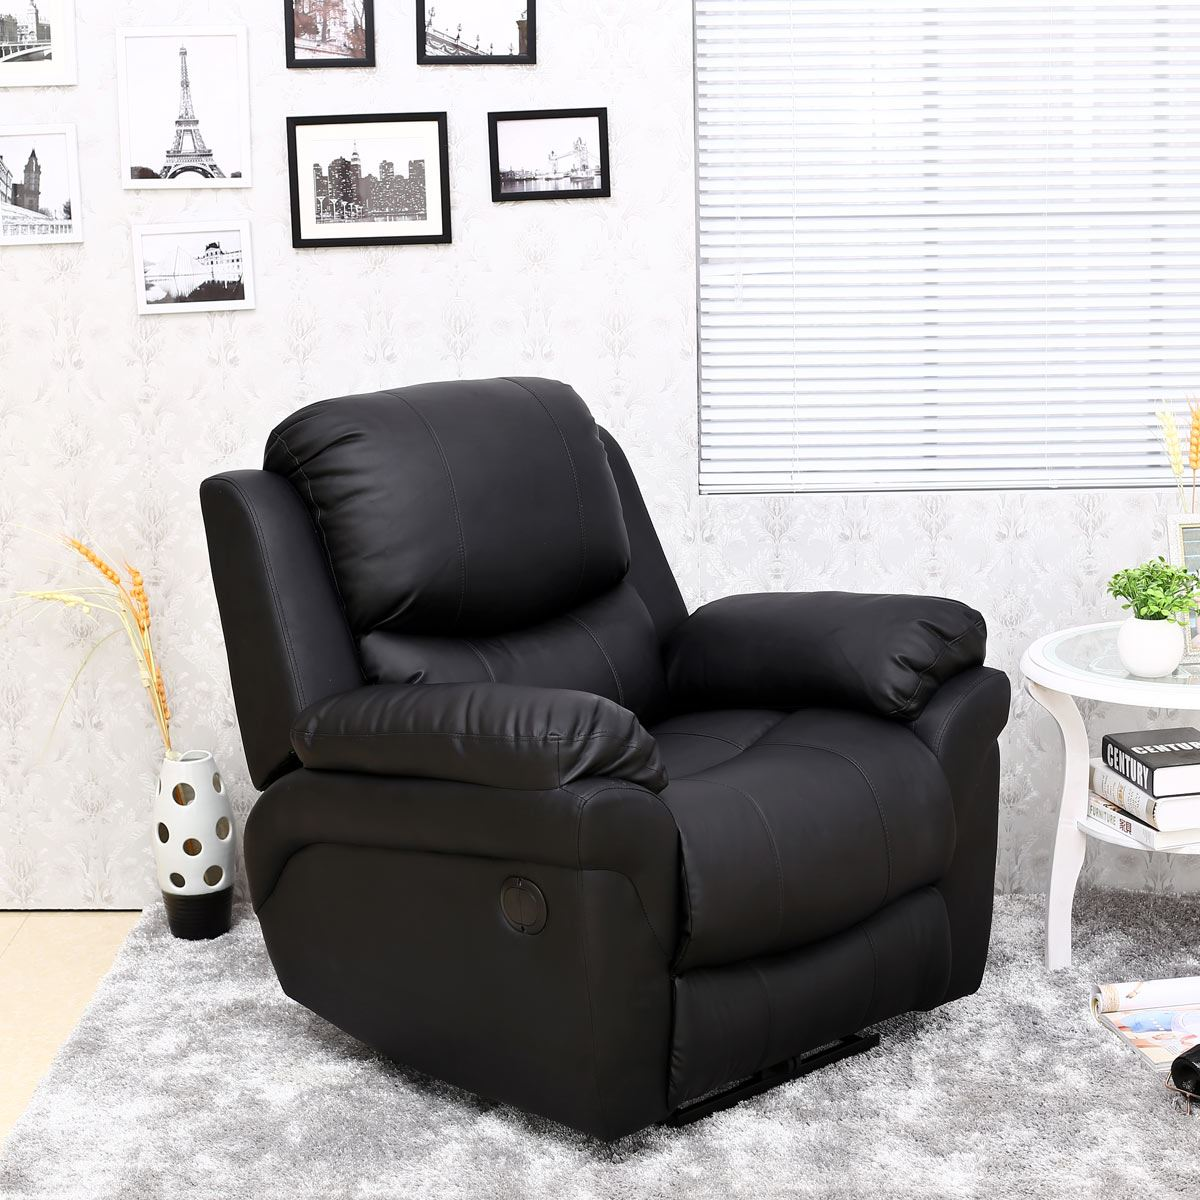 MADISON-ELECTRIC-LEATHER-AUTO-RECLINER-ARMCHAIR-SOFA-HOME- & MADISON ELECTRIC LEATHER AUTO RECLINER ARMCHAIR SOFA HOME LOUNGE ... islam-shia.org